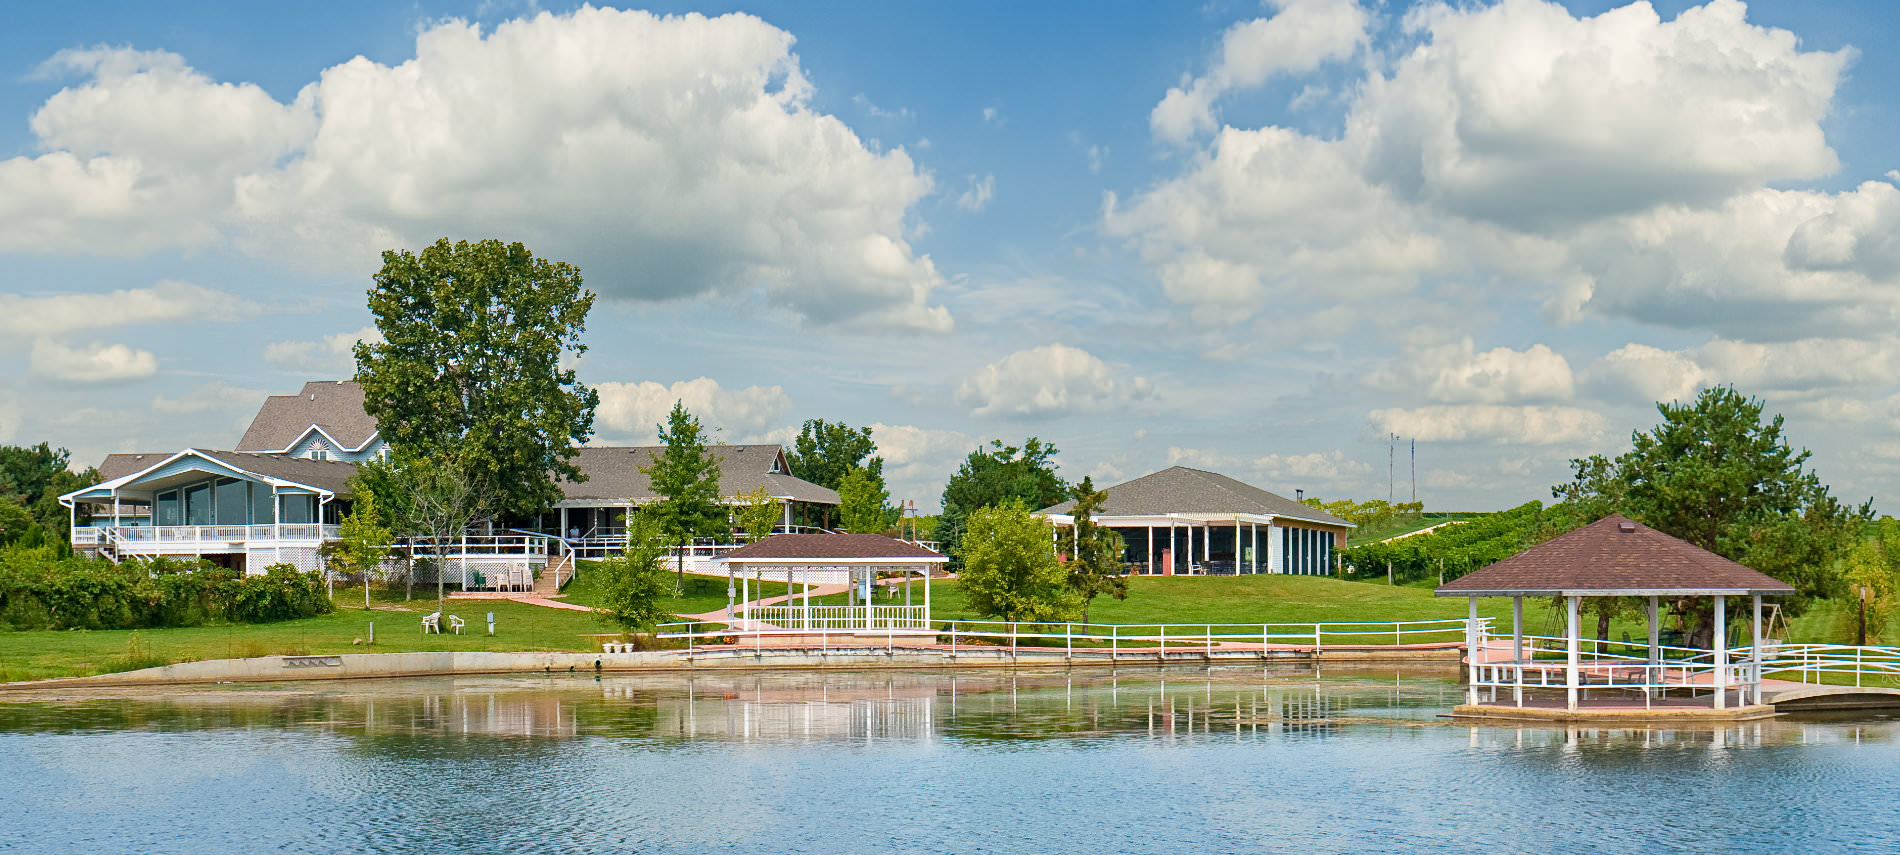 Multiple buildings along river with gazebo and dock, white railing around water, trees surrounding buildings, fluffy white clouds.